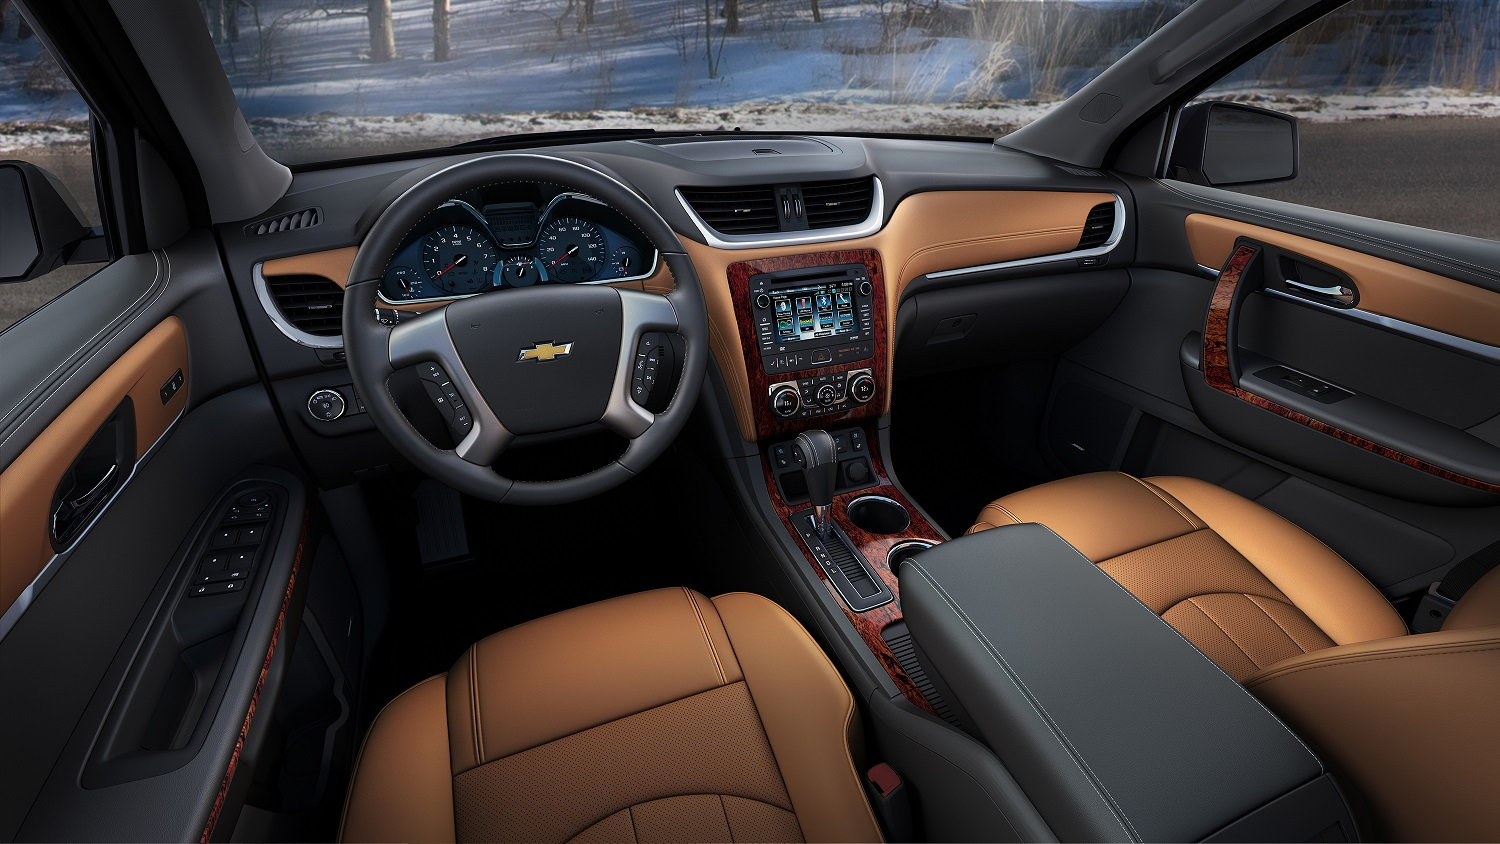 2016 Chevrolet Traverse Interior Dash